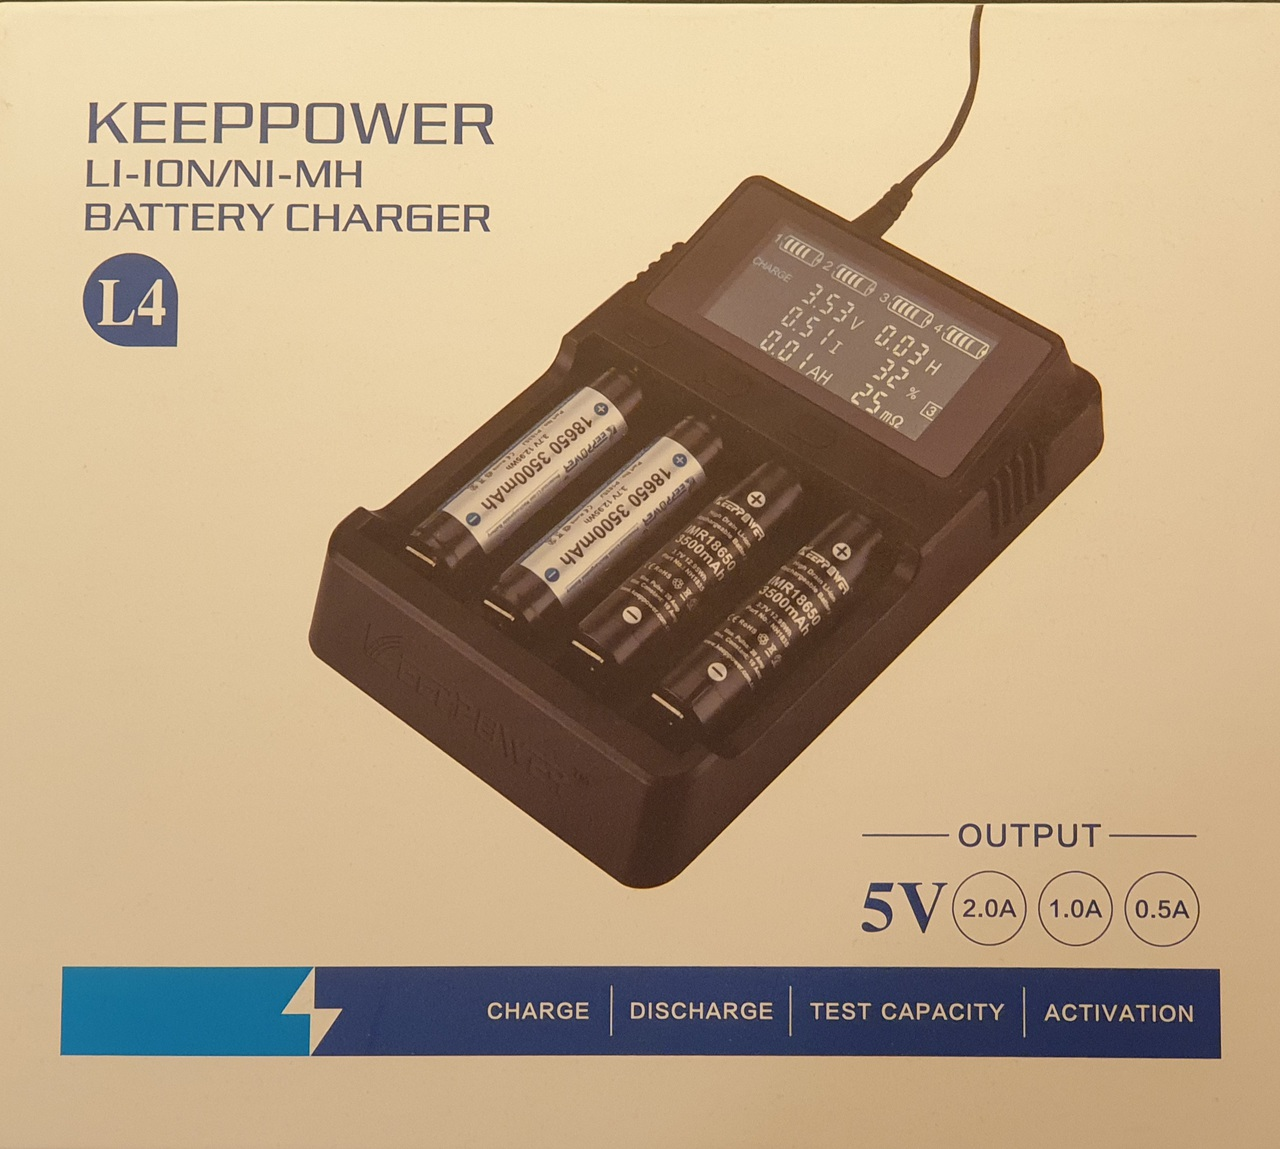 keeppowerl4charger7wjzh.jpg